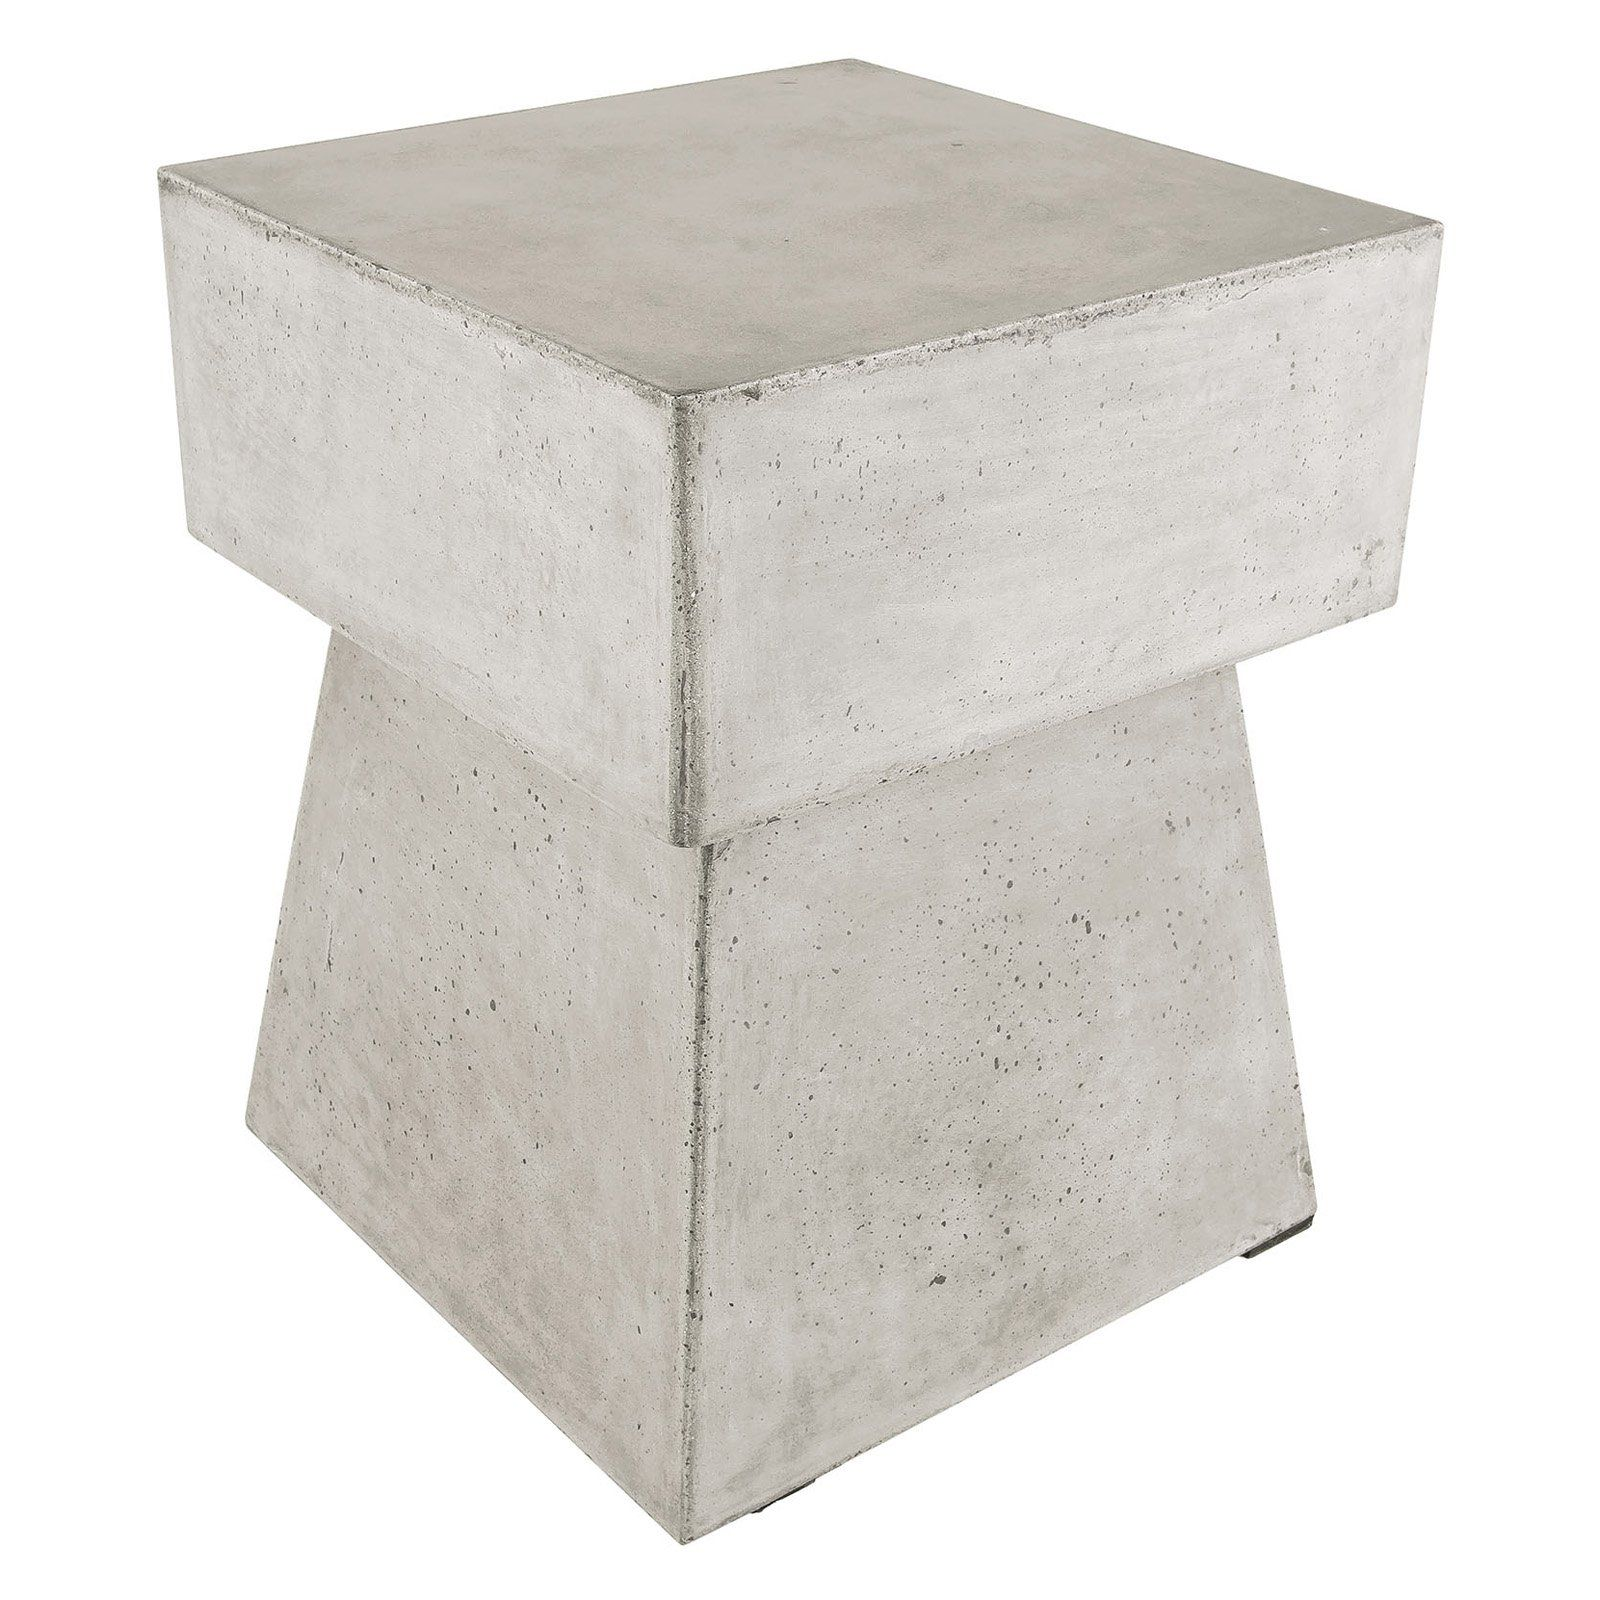 Enjoyable Dimond Home Mushroom End Table Products In 2019 Concrete Download Free Architecture Designs Crovemadebymaigaardcom